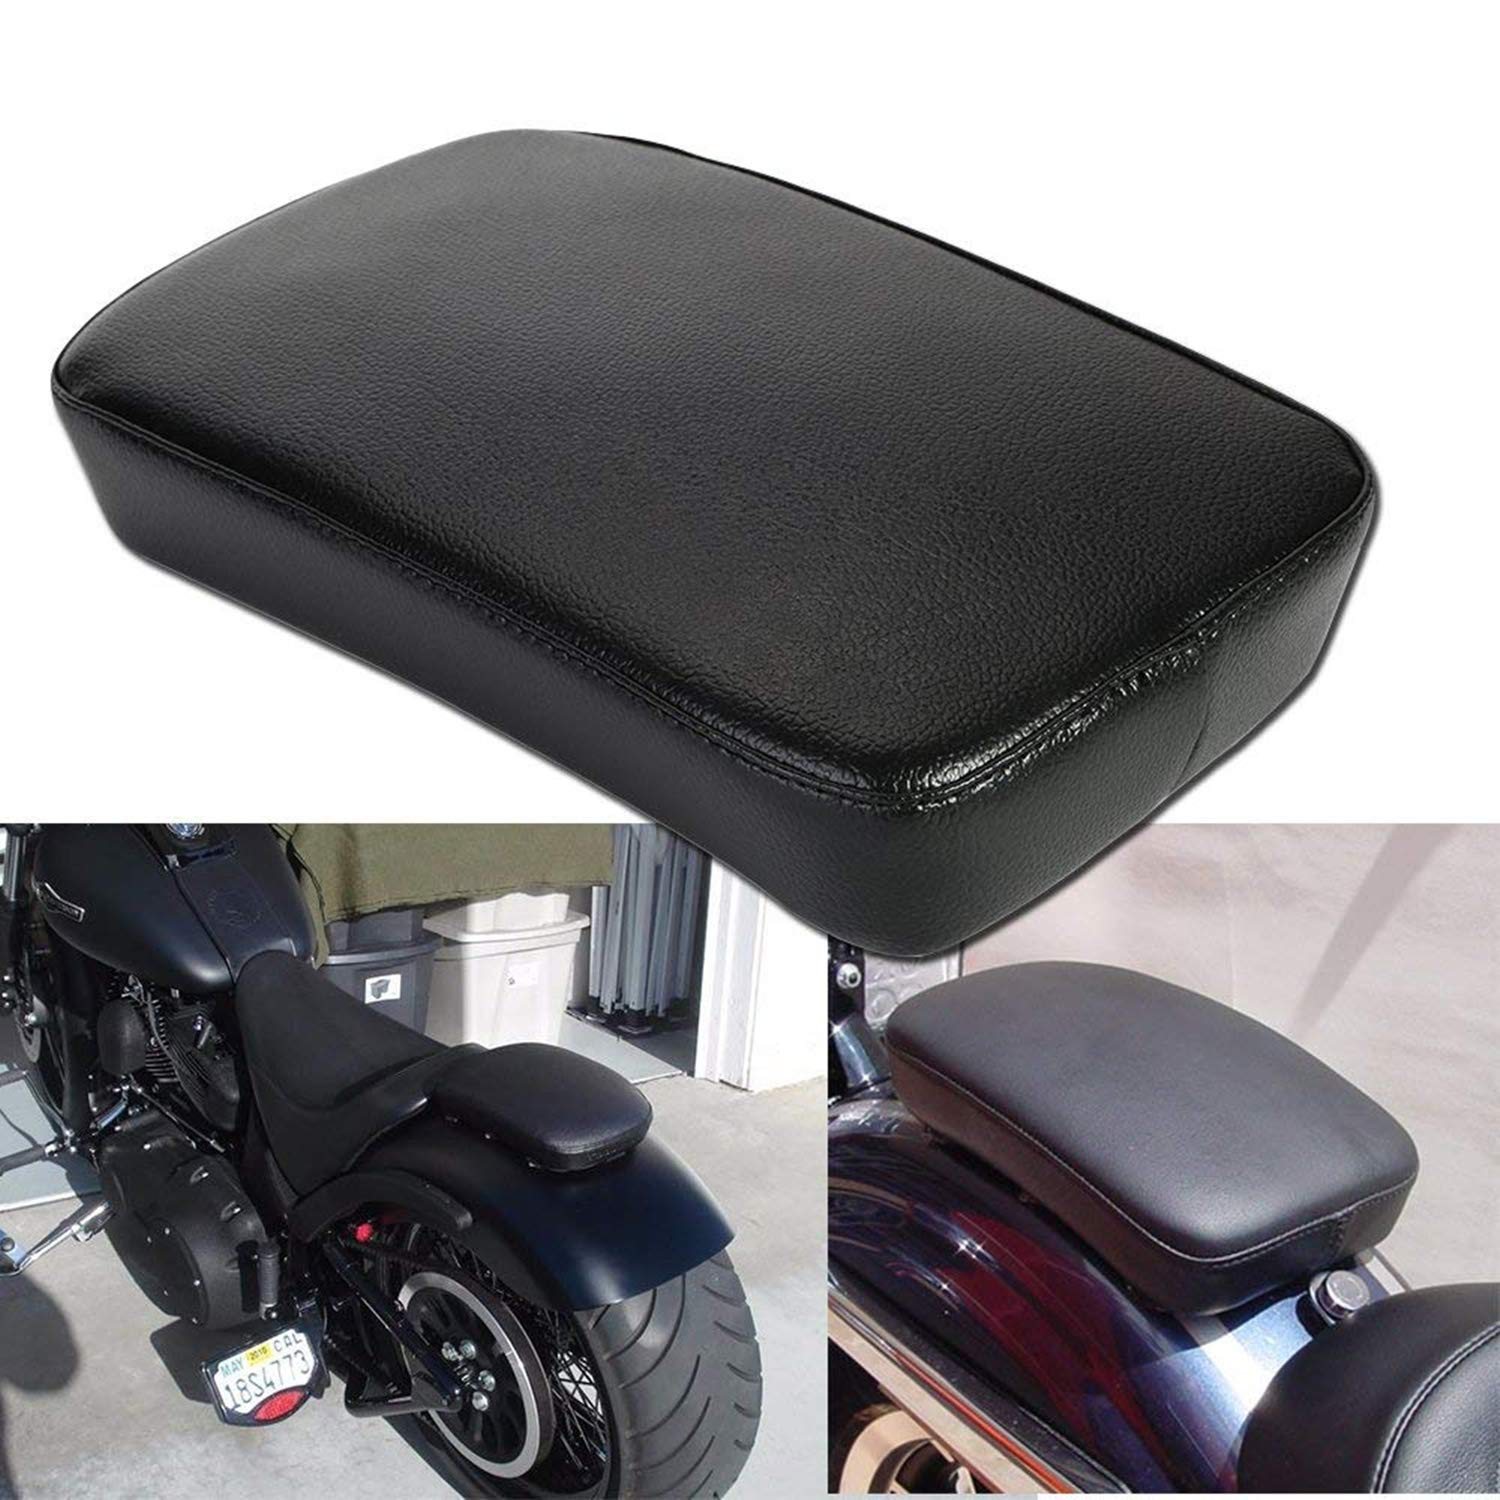 OSAN Leather Pillion Pad w/ 6 Suction Cup Rear Passenger Seat For Harley Custom Bikes